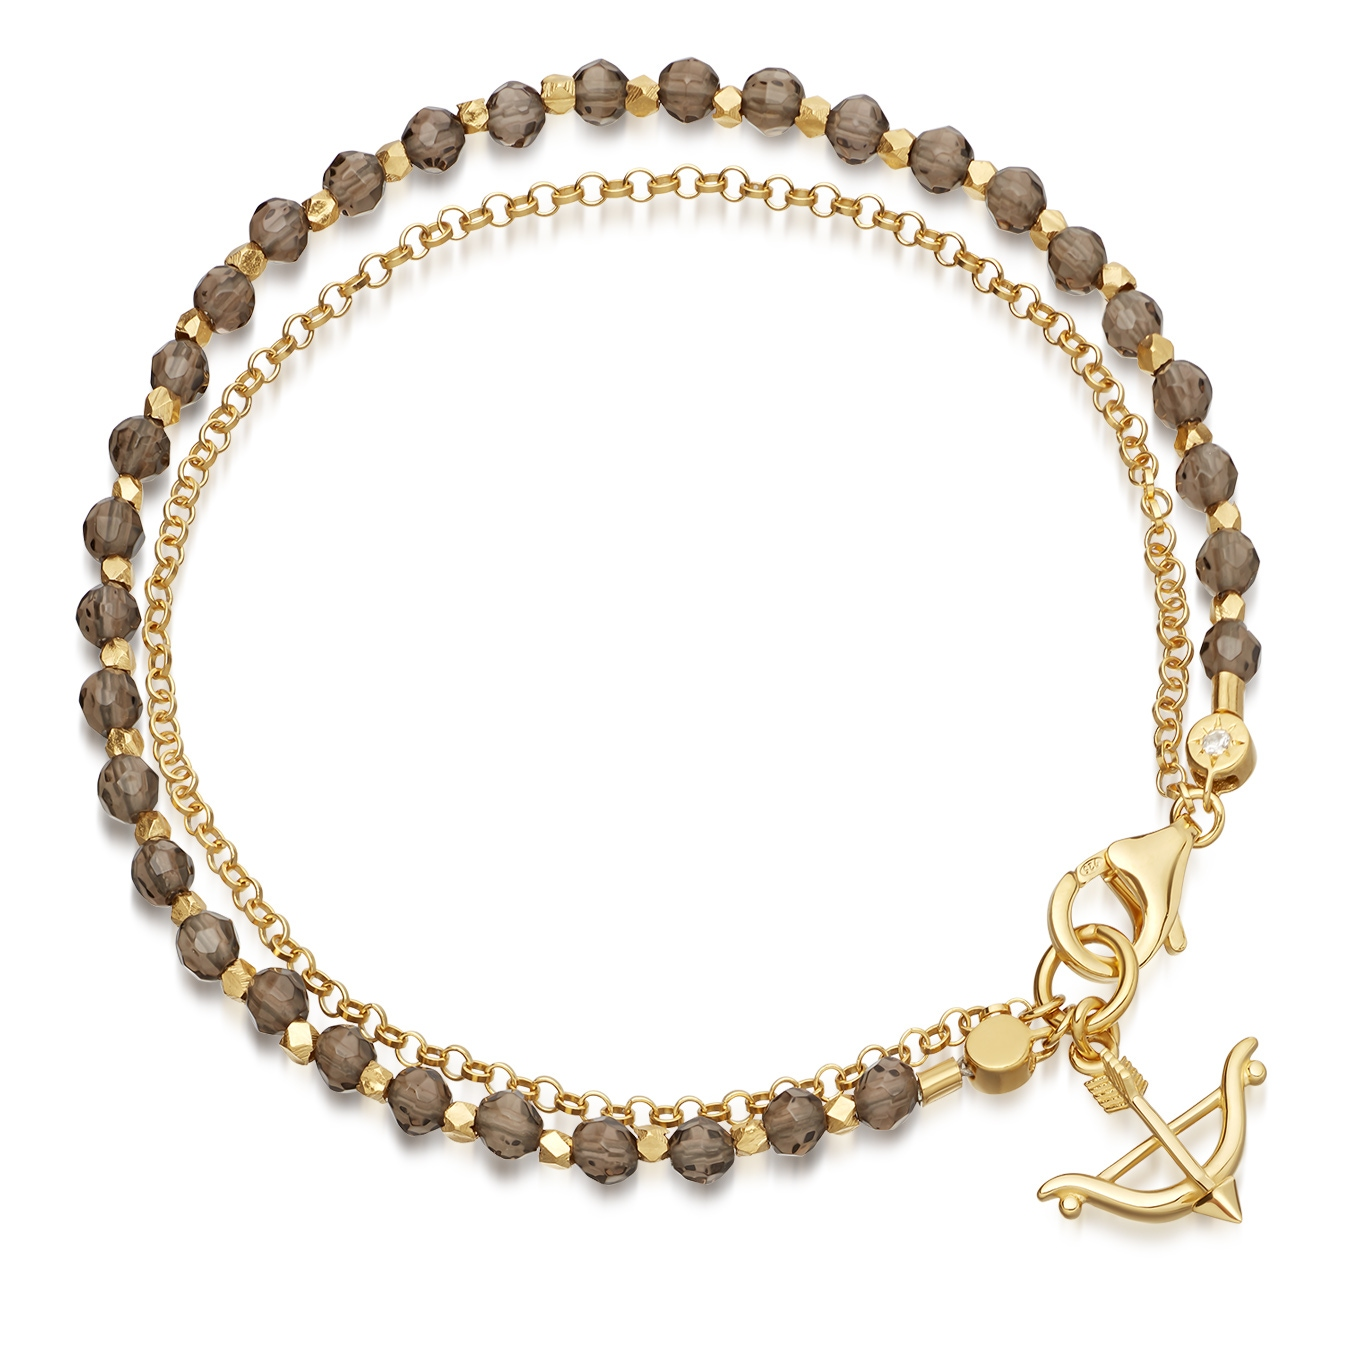 Smoky Quartz Bow and Arrow Biography Bracelet